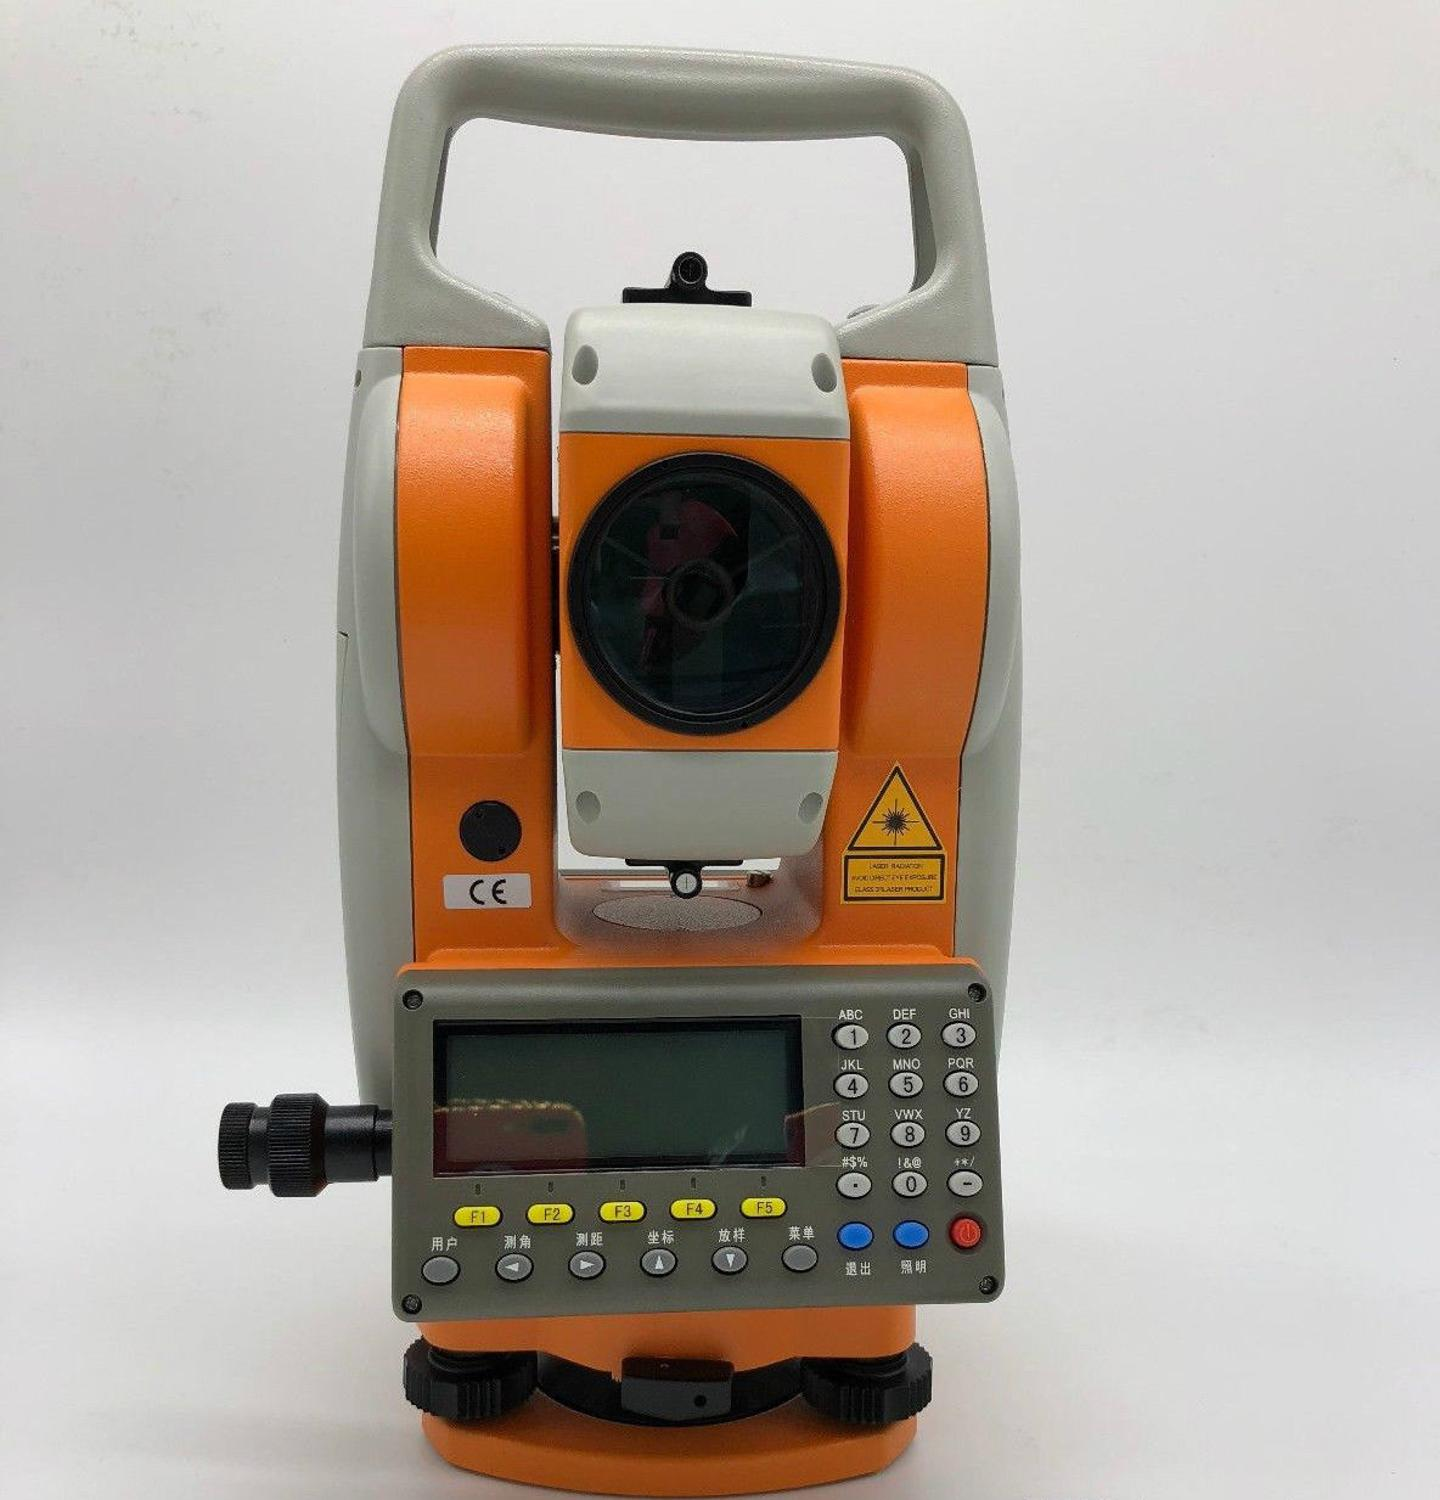 NEW Mato MTS-602R Reflectorless 300m total stationNEW Mato MTS-602R Reflectorless 300m total station